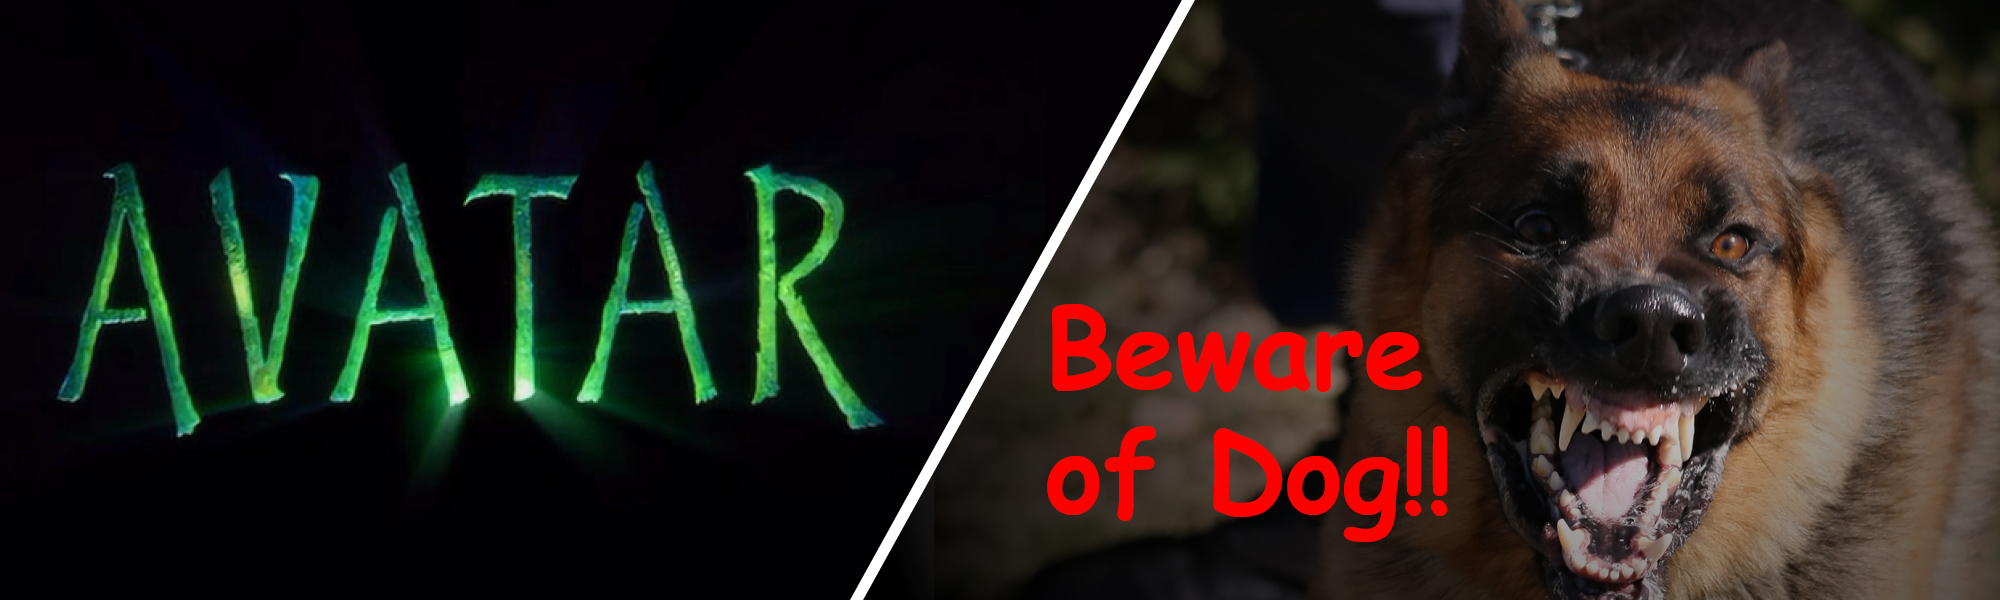 avatar in papyrus and beware in comic sans